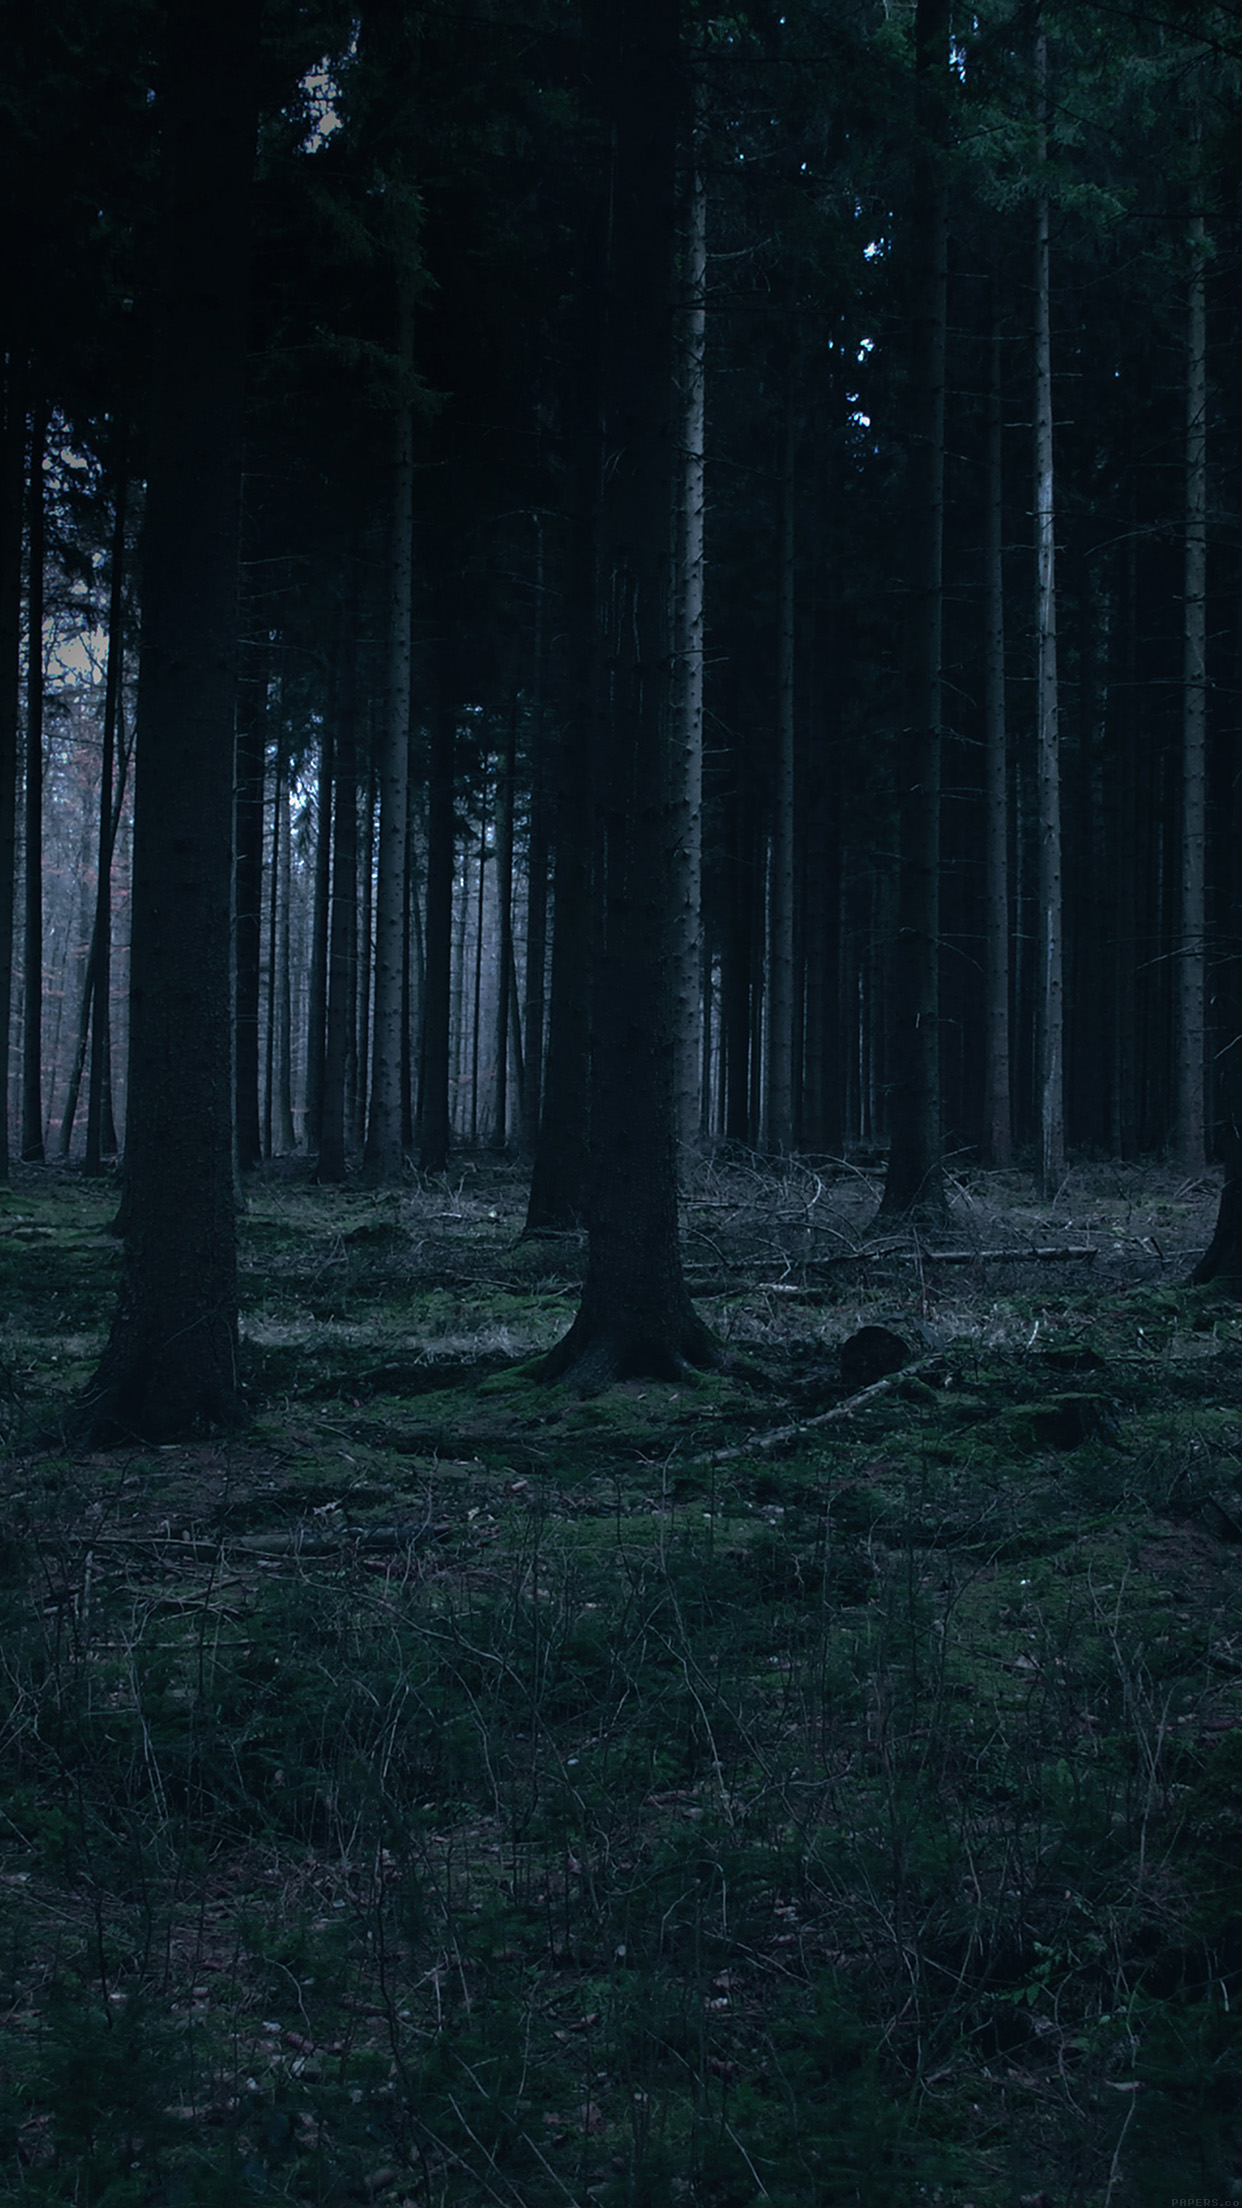 Forest dark night trees nature android wallpaper android hd forest dark night trees nature android wallpaper android hd wallpapers voltagebd Gallery